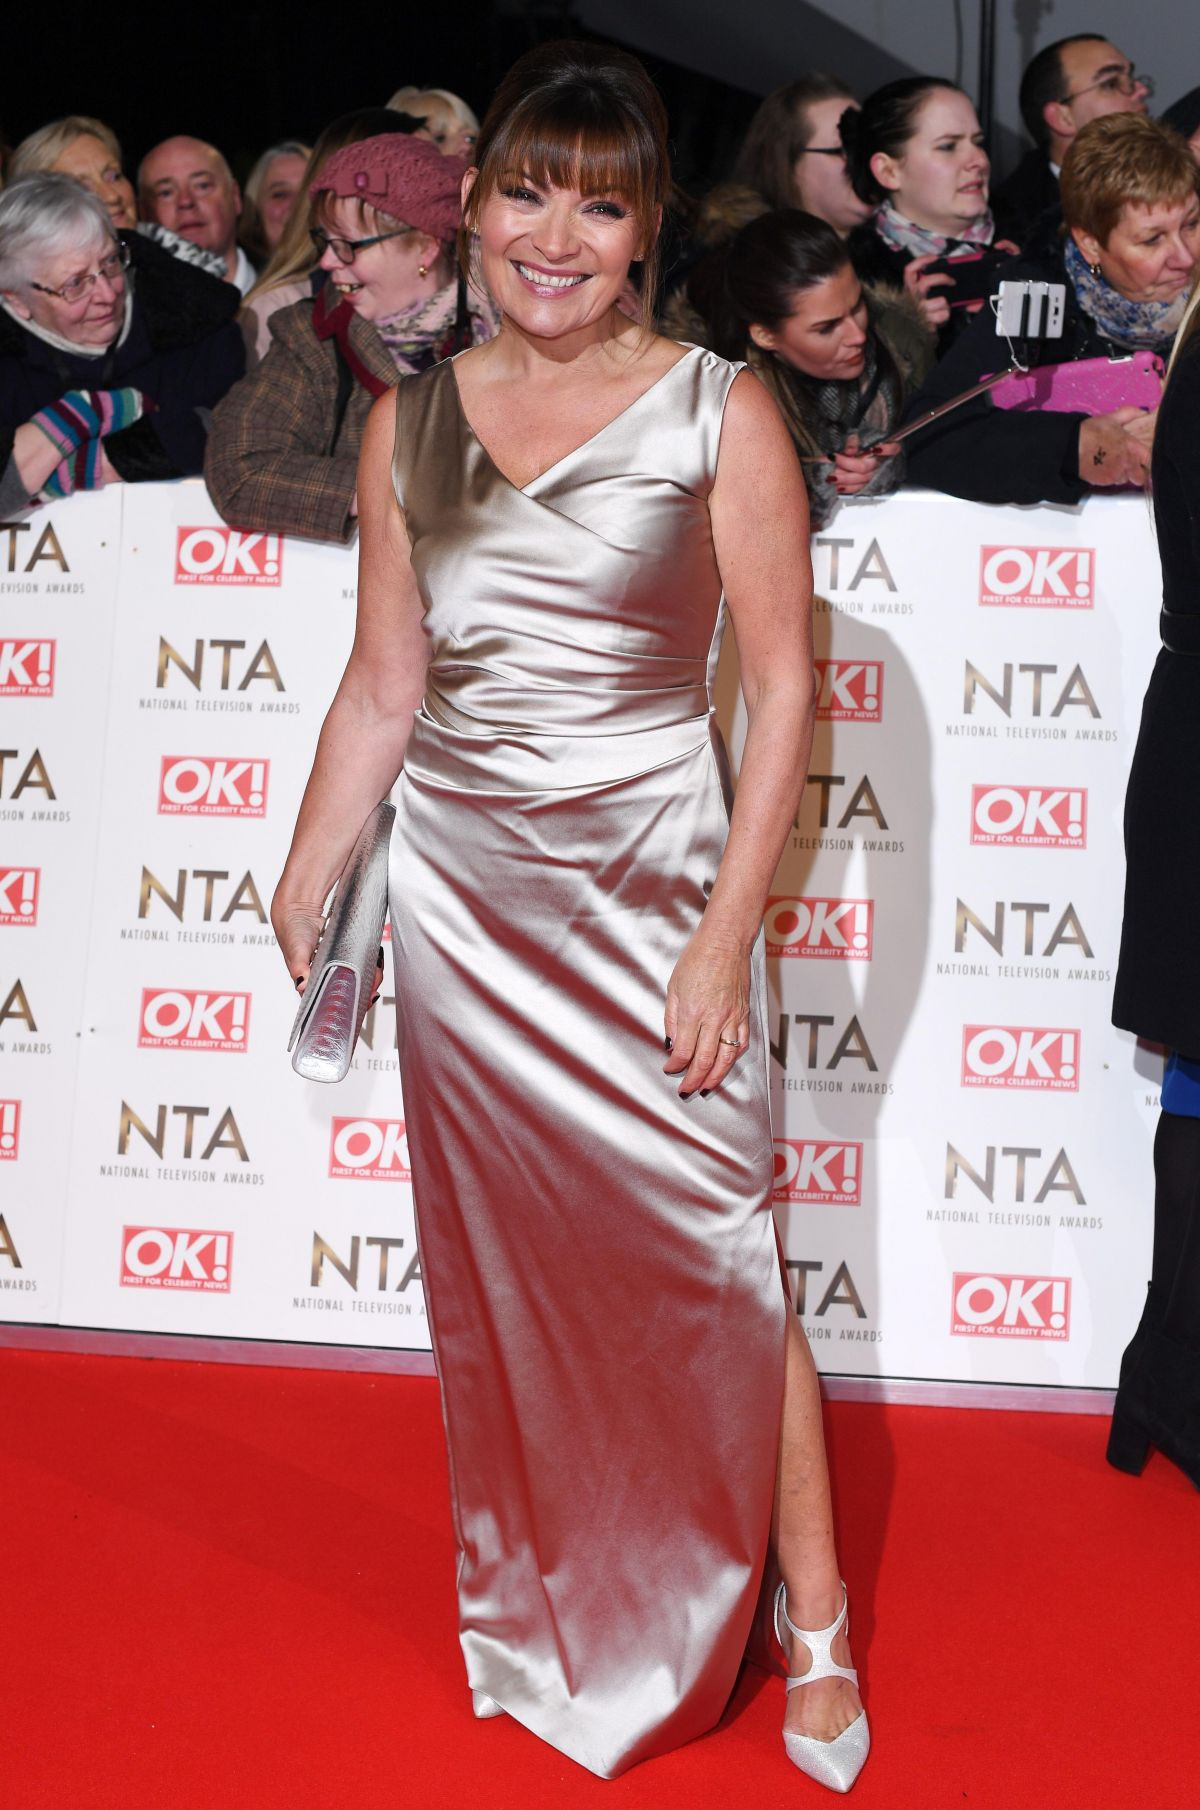 LORRAINE KELLY at National Television Awards in London 01/25/2017